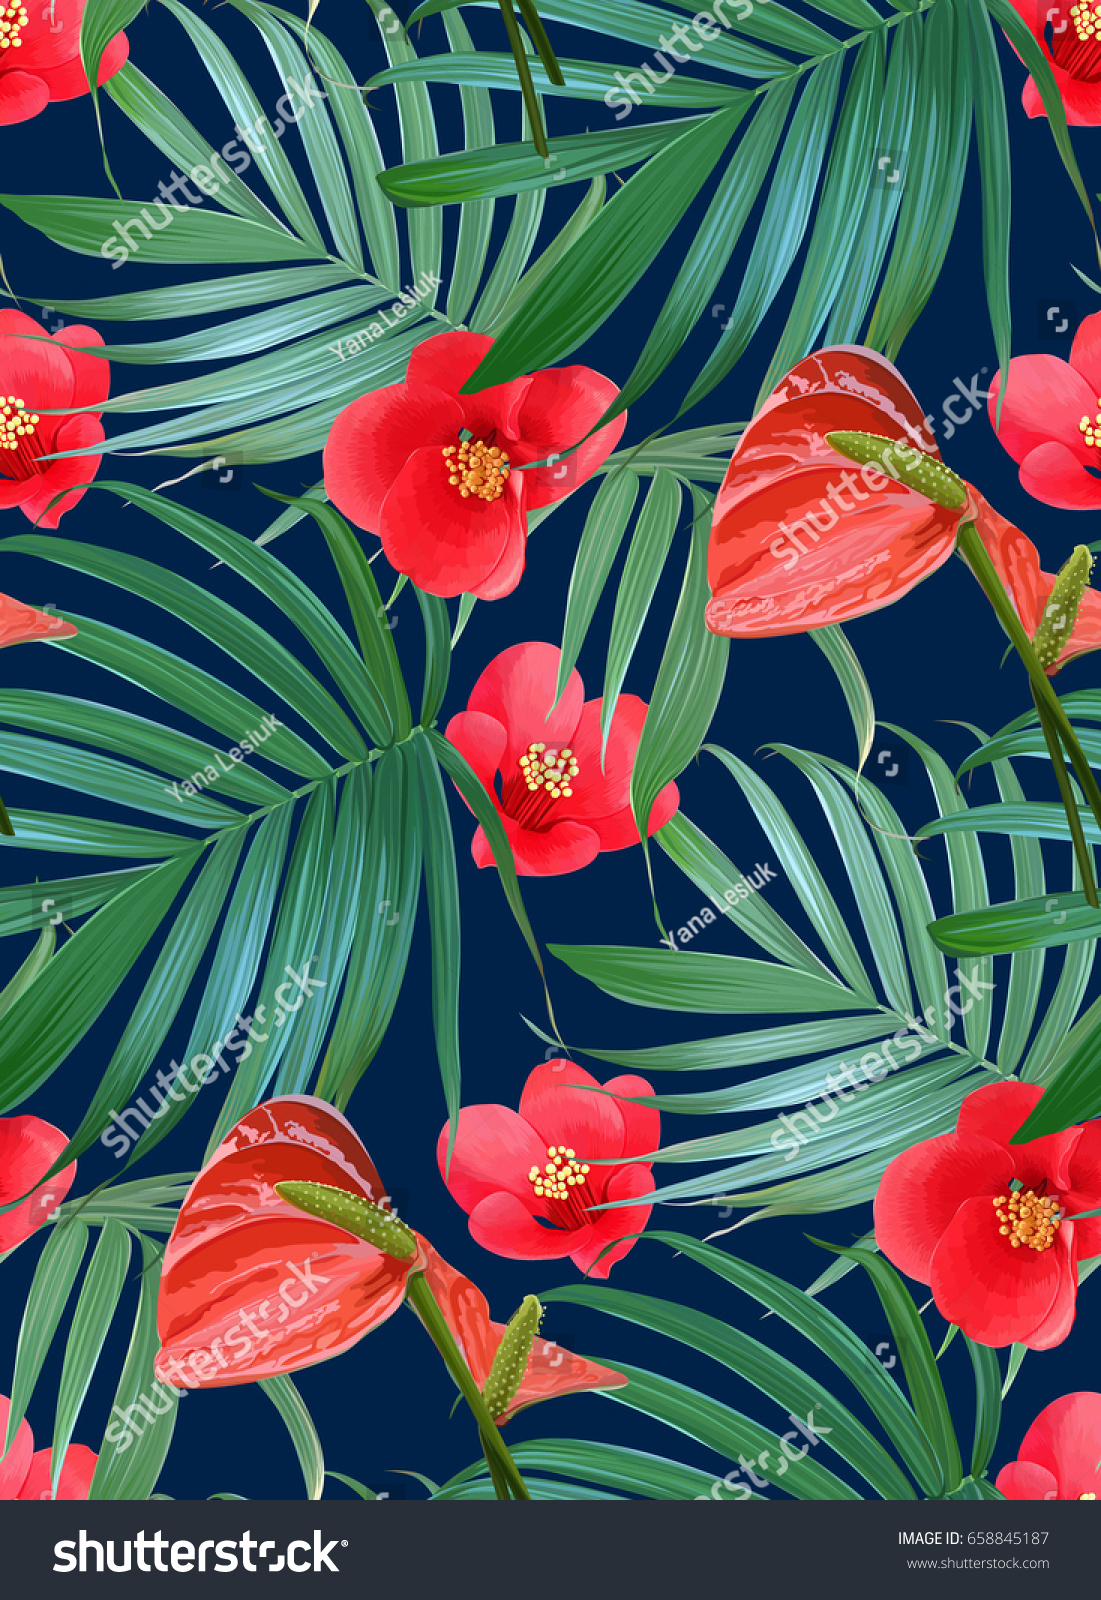 Vector tropical flowers palm leaves seamless stock vector 2018 vector tropical flowers and palm leaves seamless pattern floral exotic hawaiian background blooming elements izmirmasajfo Images